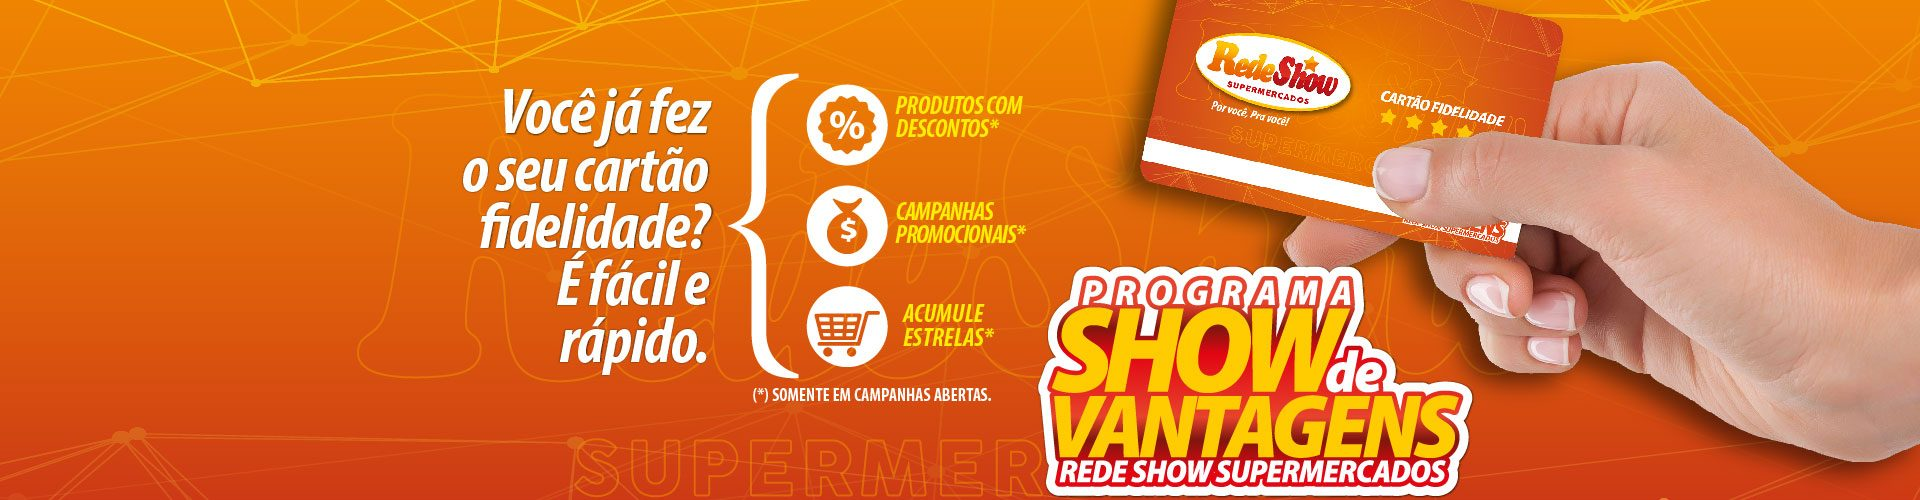 Banner-site-Fidelidade-01